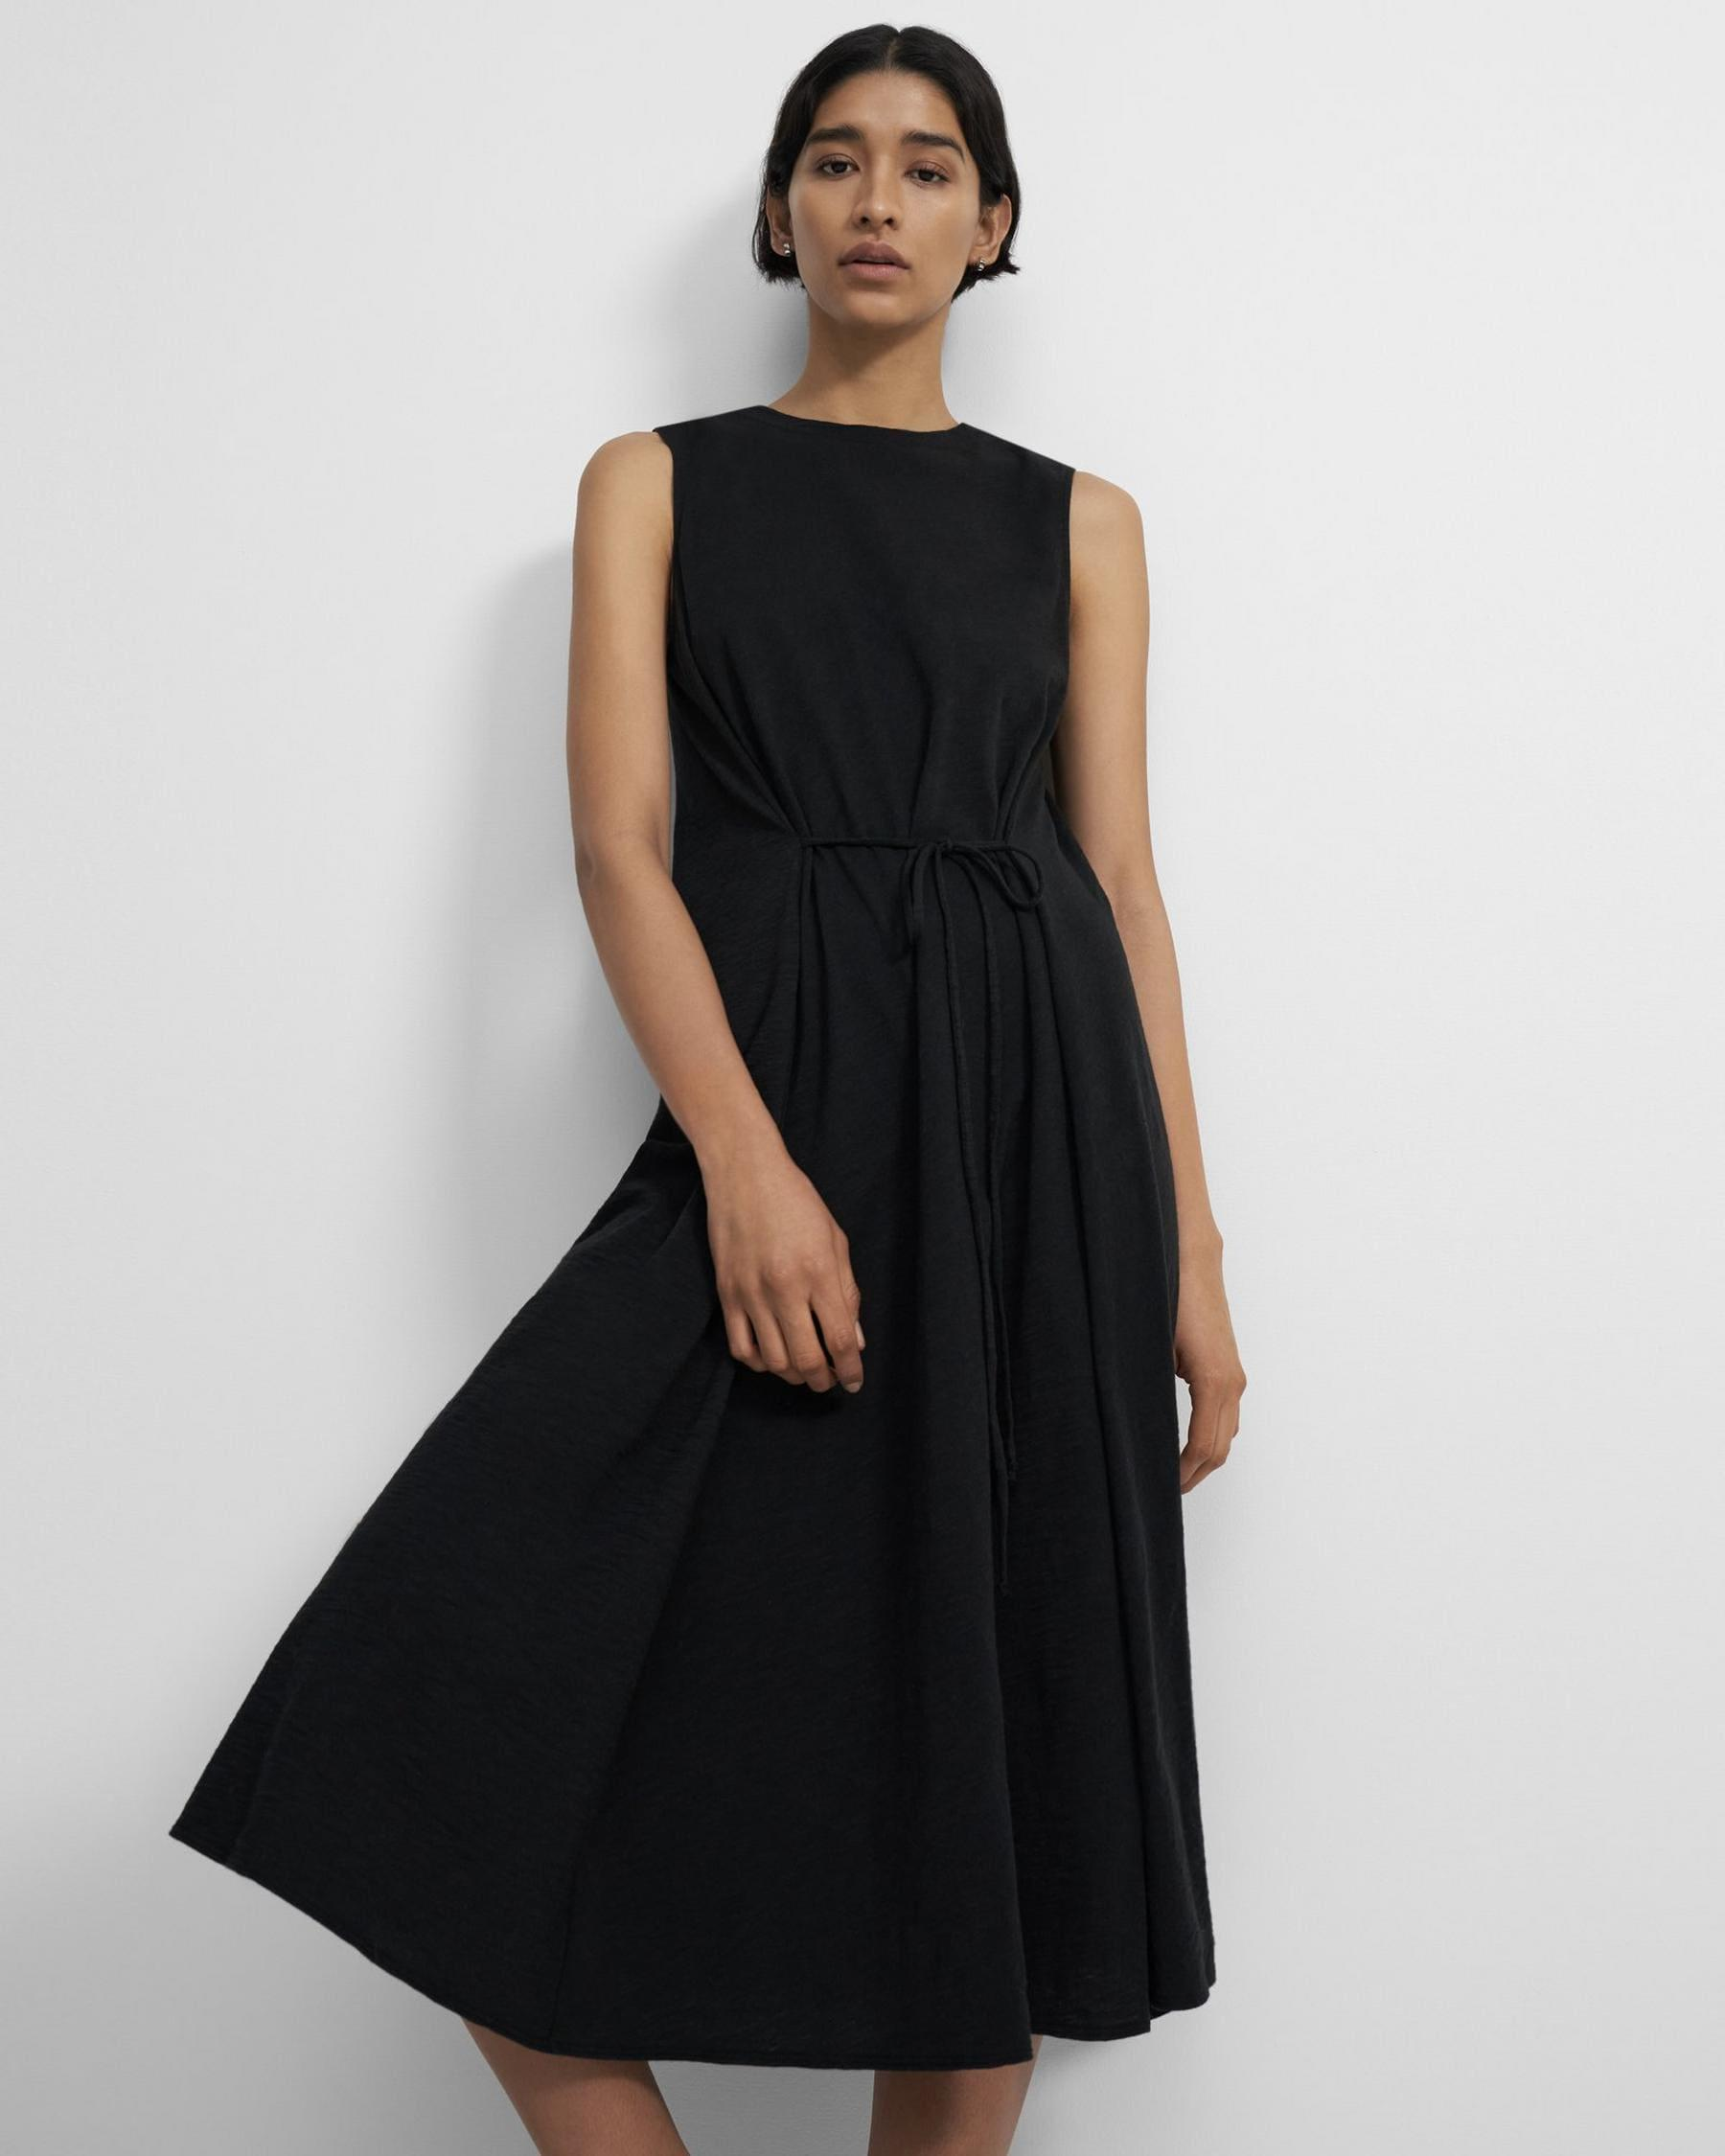 Cinched Tie Dress in Organic Cotton